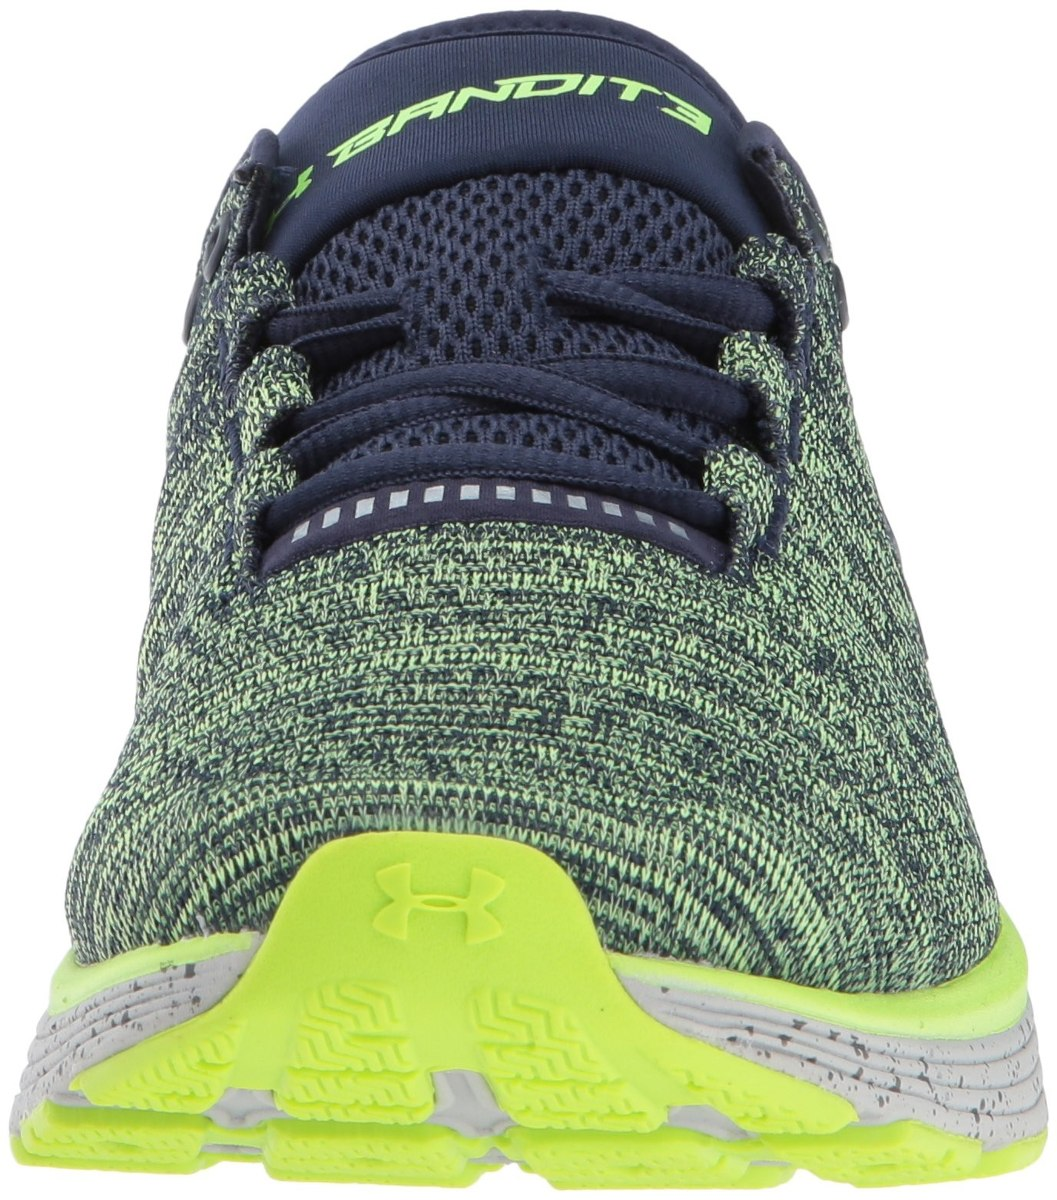 san francisco 474c3 8fa79 Tenis Hombre Under Armour Micro G Limitless 2 Team 25